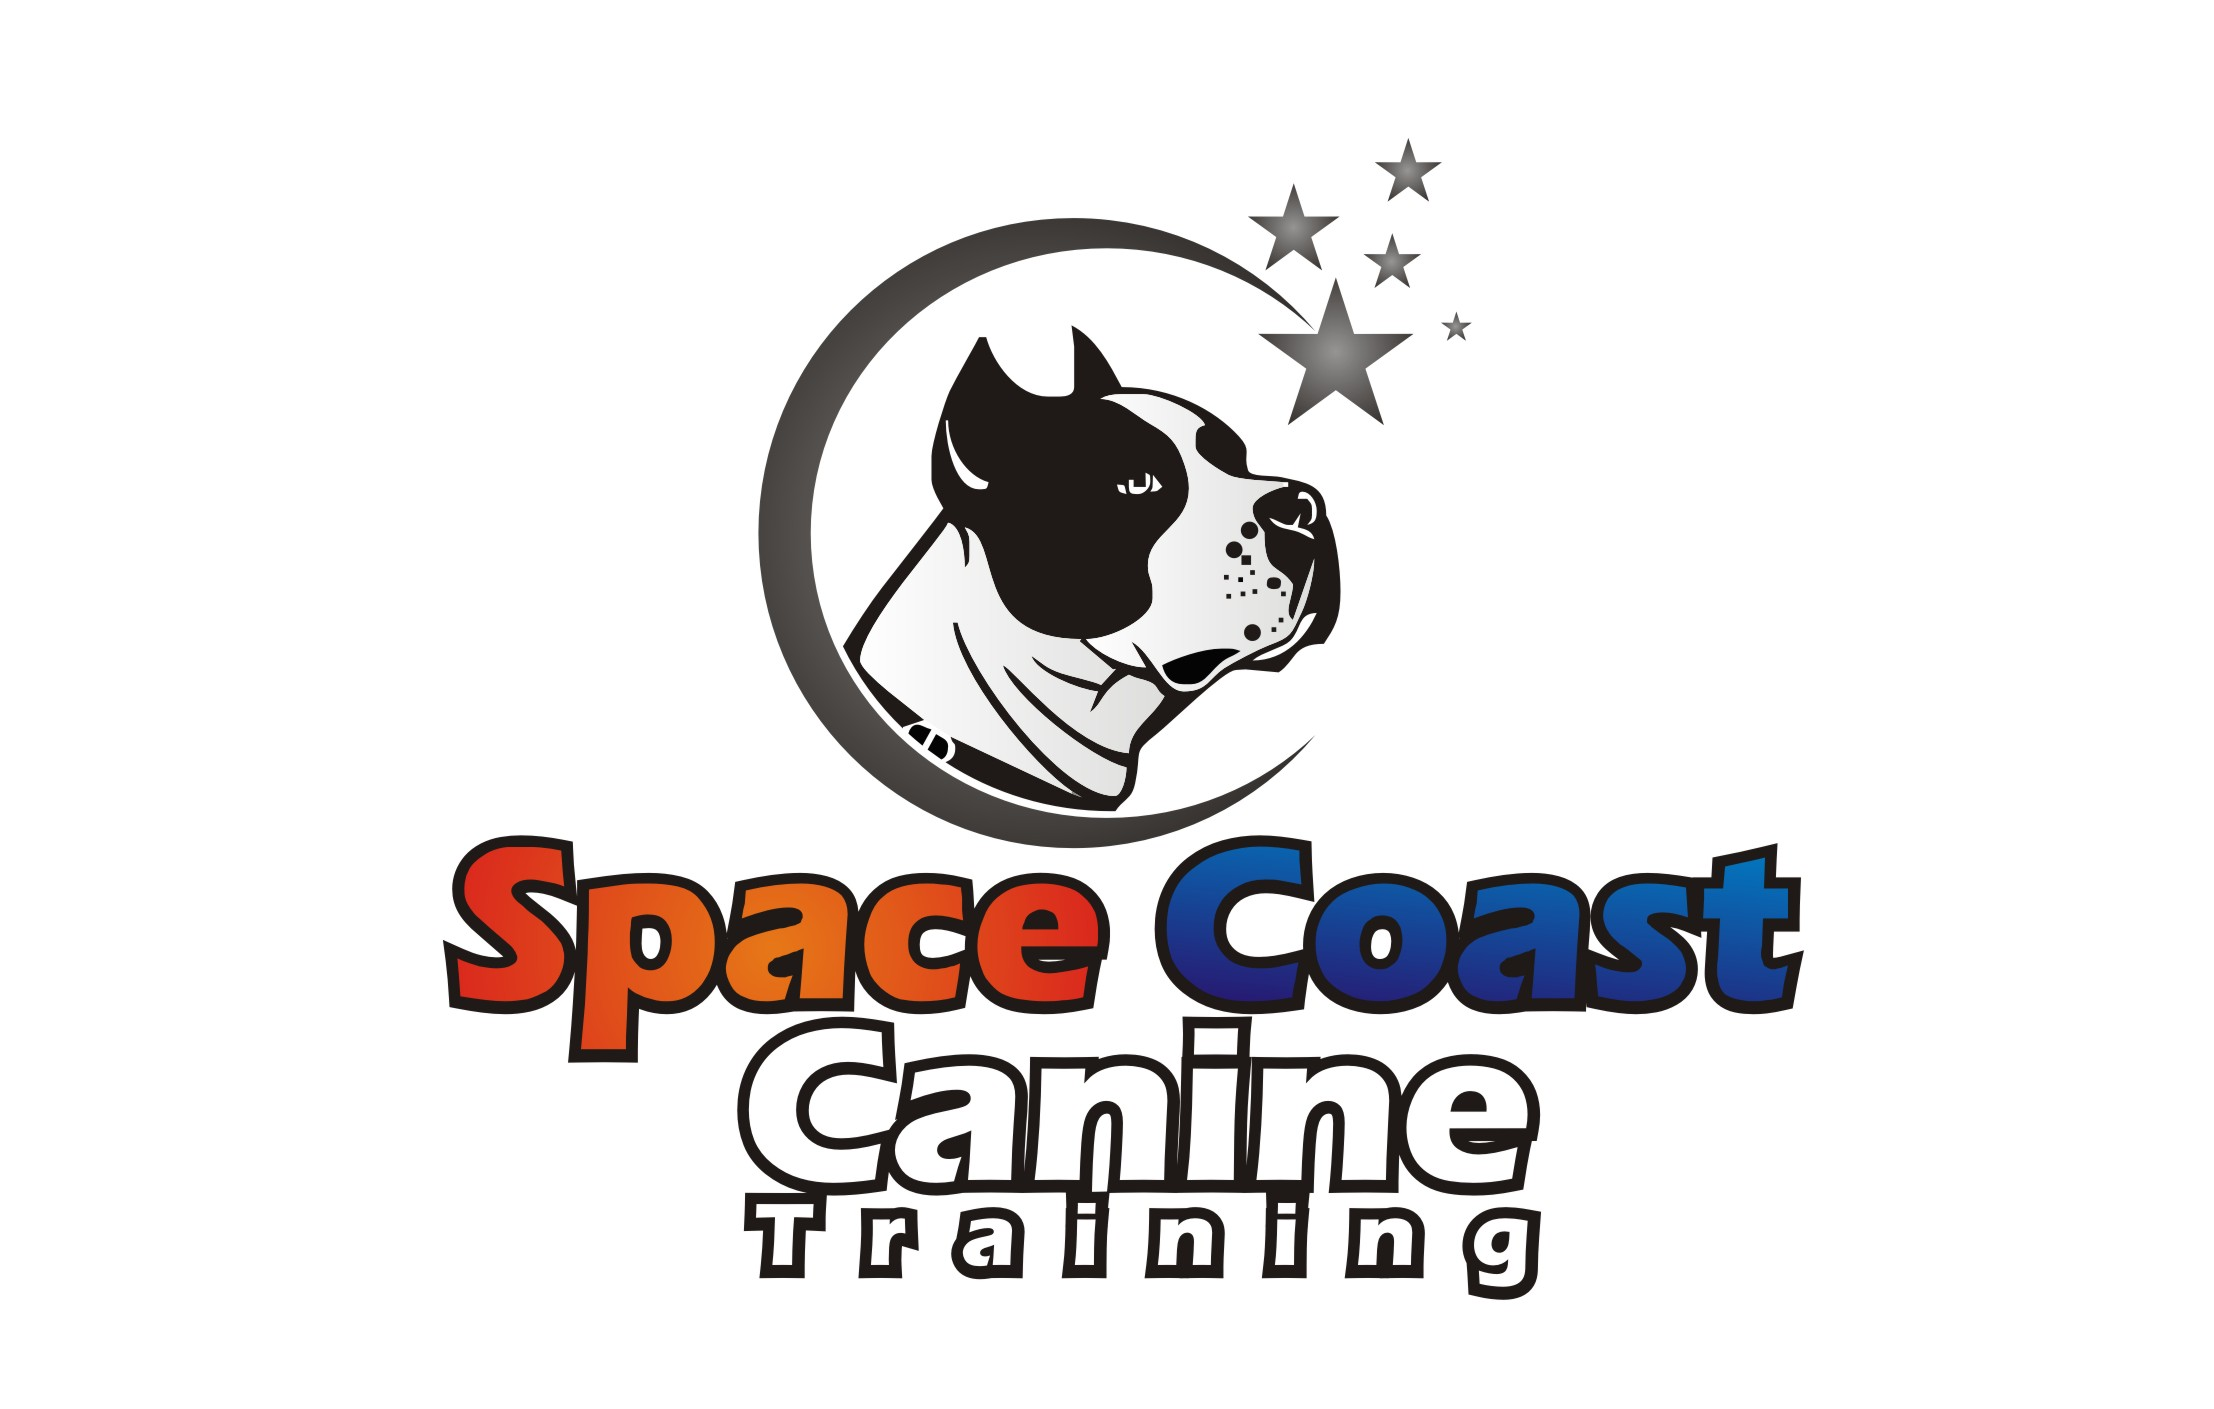 Logo Design by Yuda Hermawan - Entry No. 20 in the Logo Design Contest Creative Logo Design for Space Coast Canine Training.